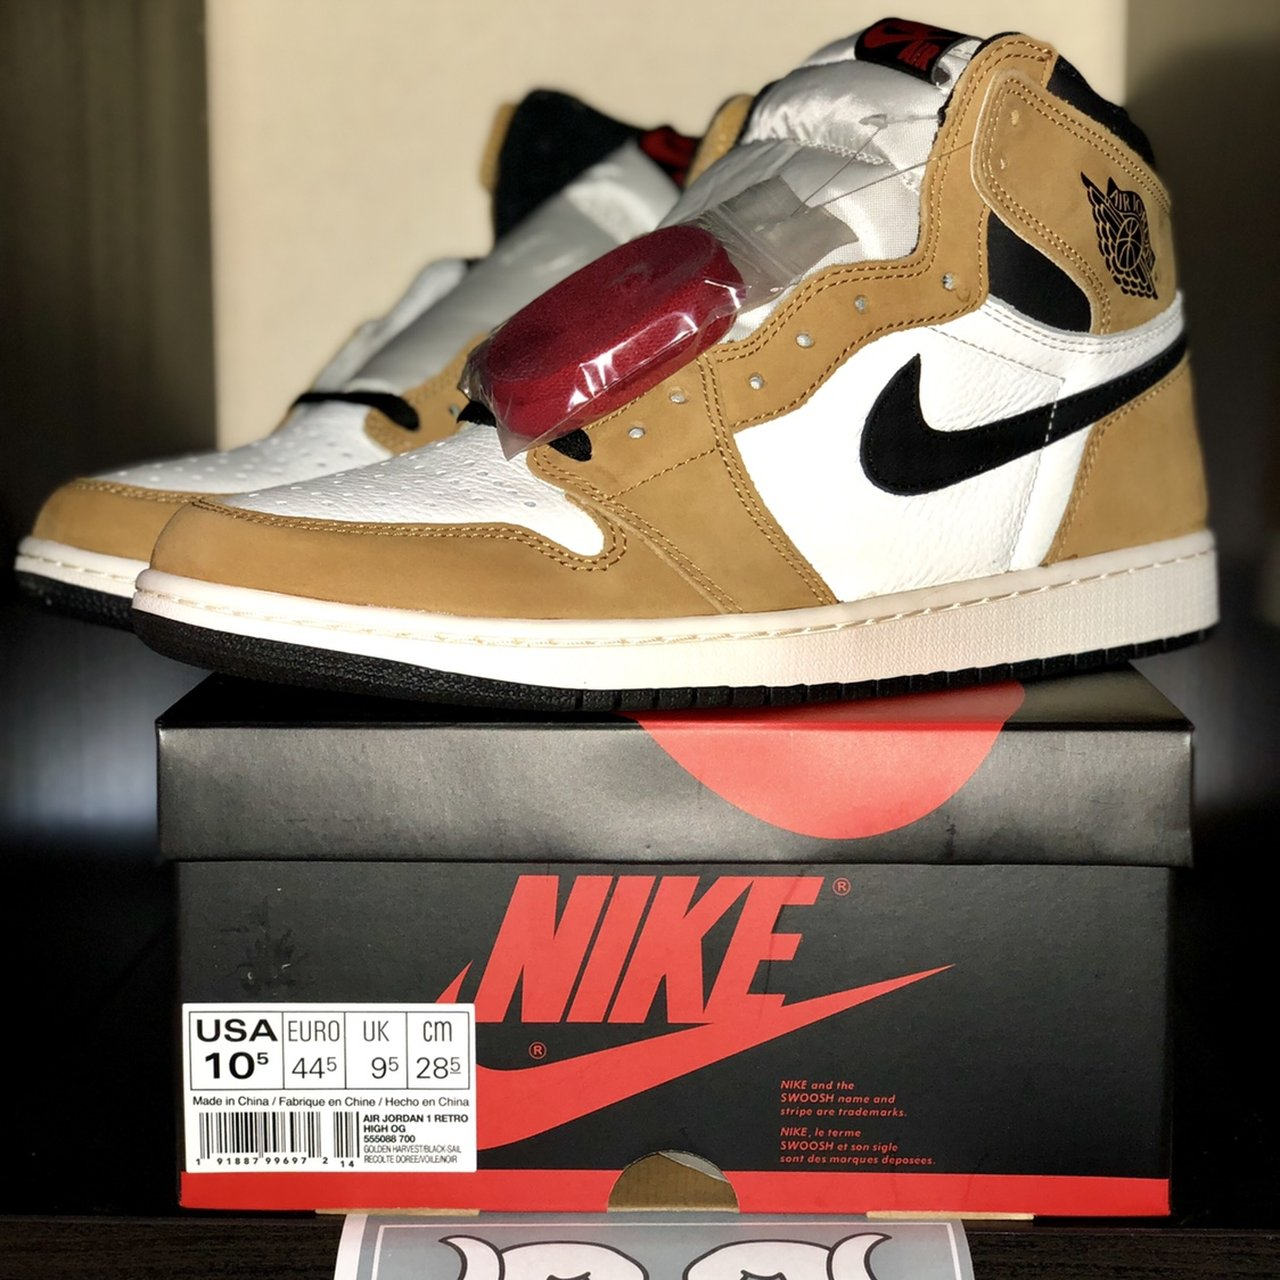 1d19cc2797a @overpriced_store. 6 months ago. Napoli, Italia. Air Jordan 1 Retro High  Rookie of the Year